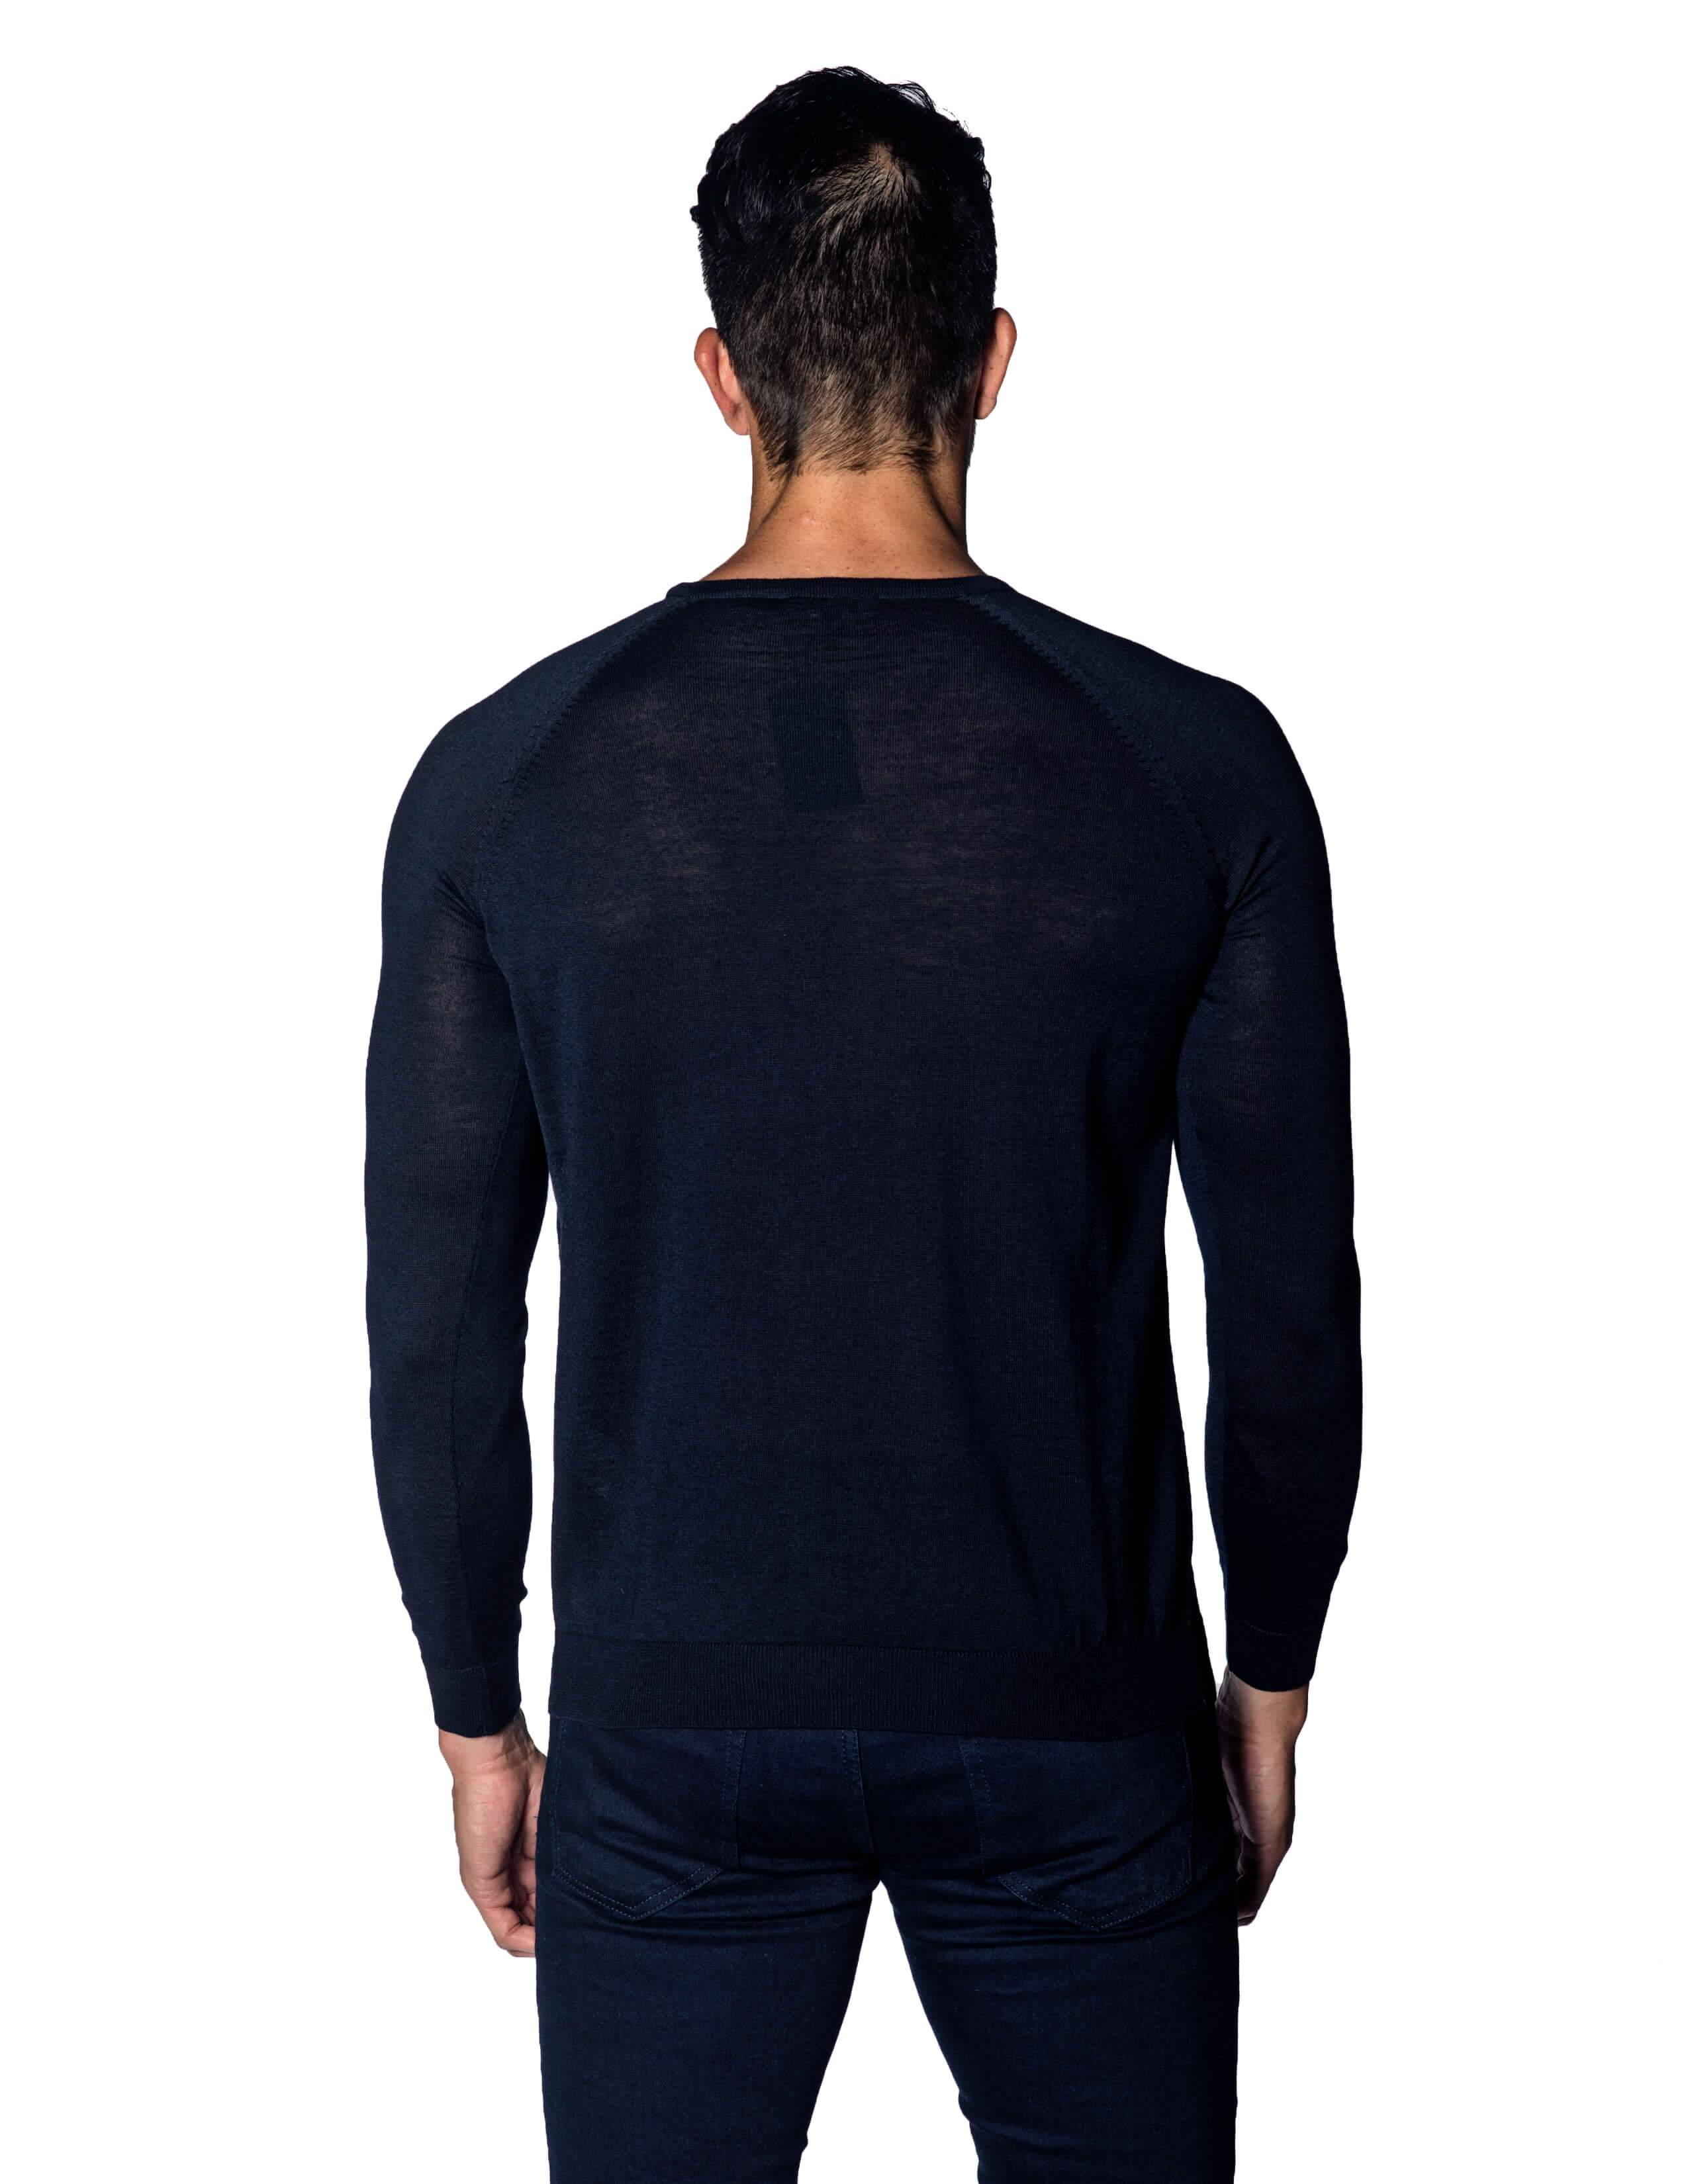 Navy Sweater Crew Neck with Faux Pocket for Men - back 1896-NV